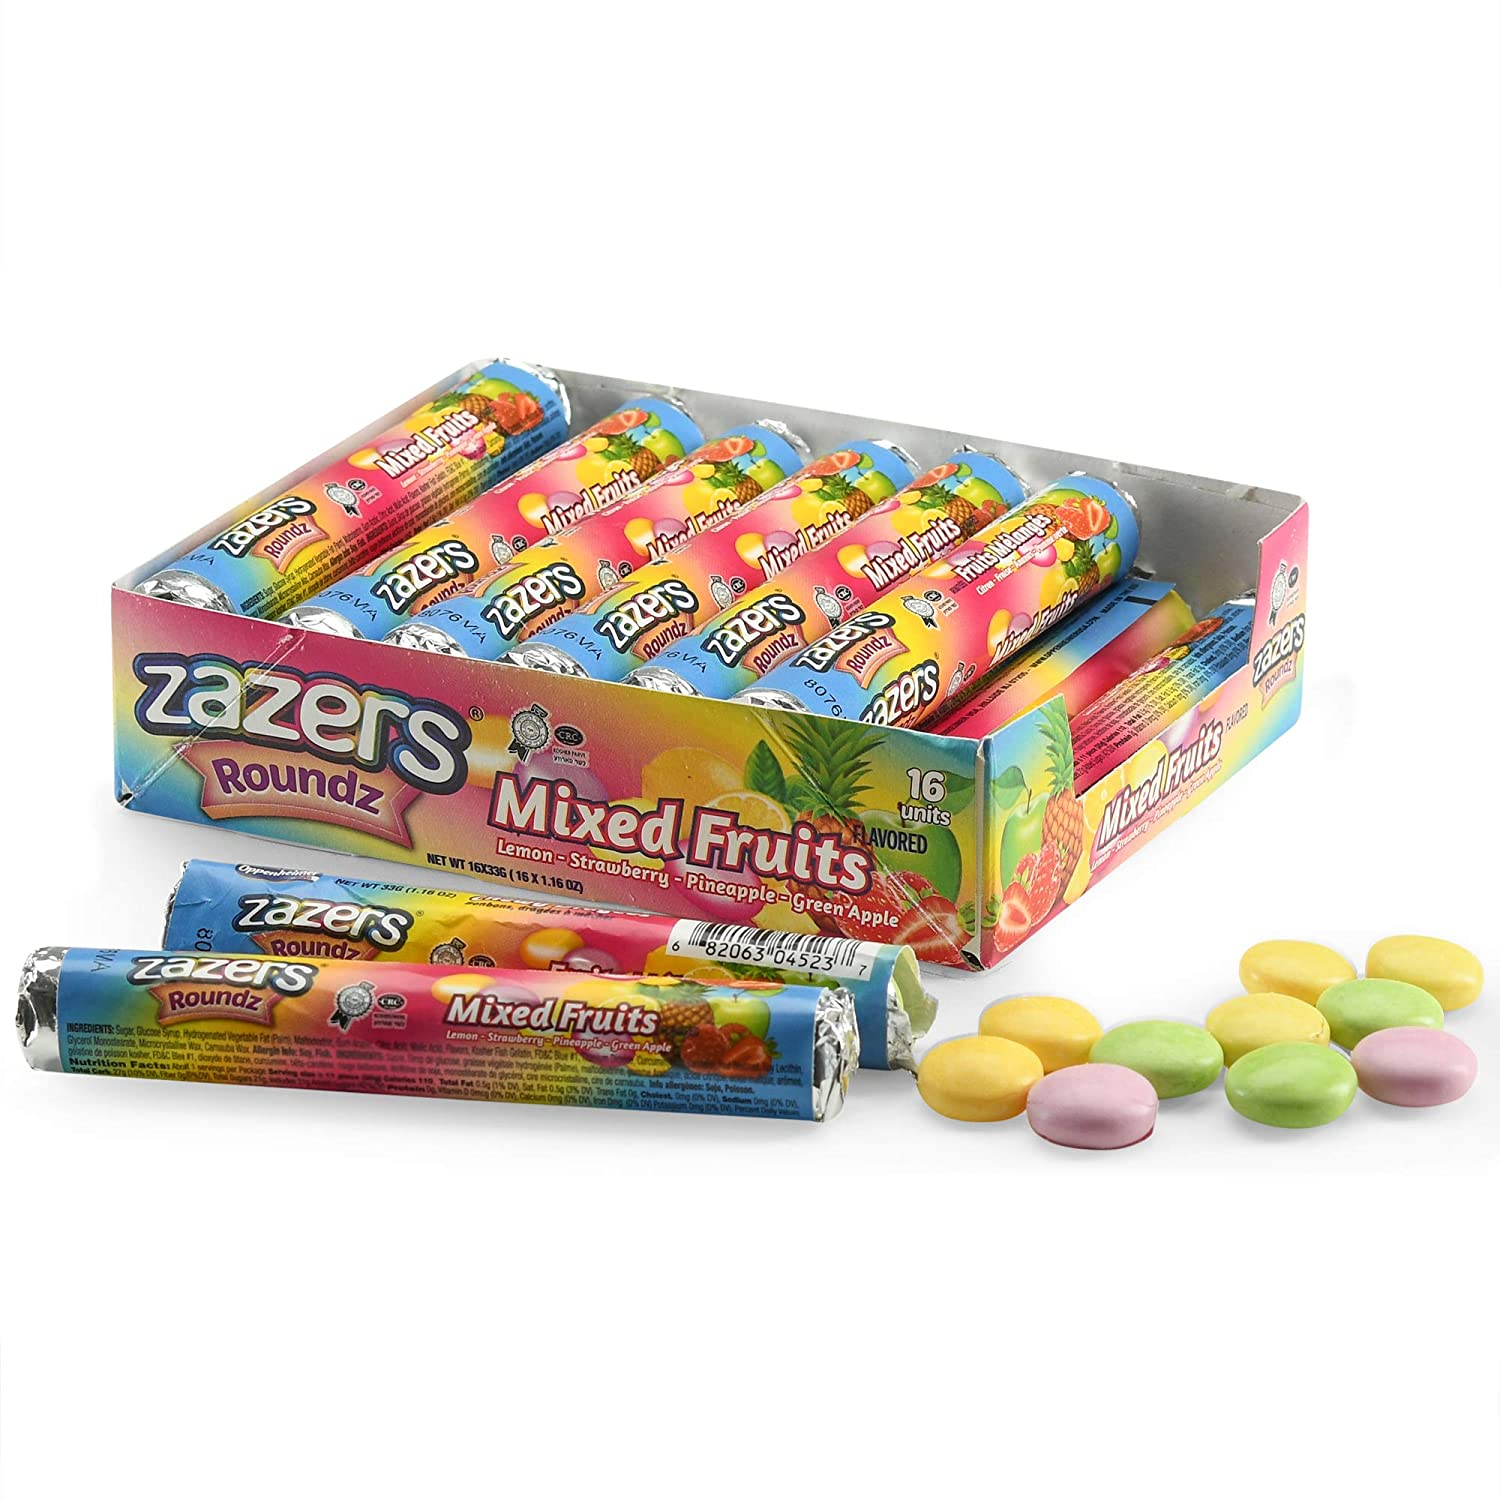 Zazers Chewy Round Candy Roll, Fruit Flavored Candy, Lemon, Pineapple, Green Apple, and Strawberry Assorted Flavored Candy Non Melting Bulk Candy for Home Office Party Pack of 16